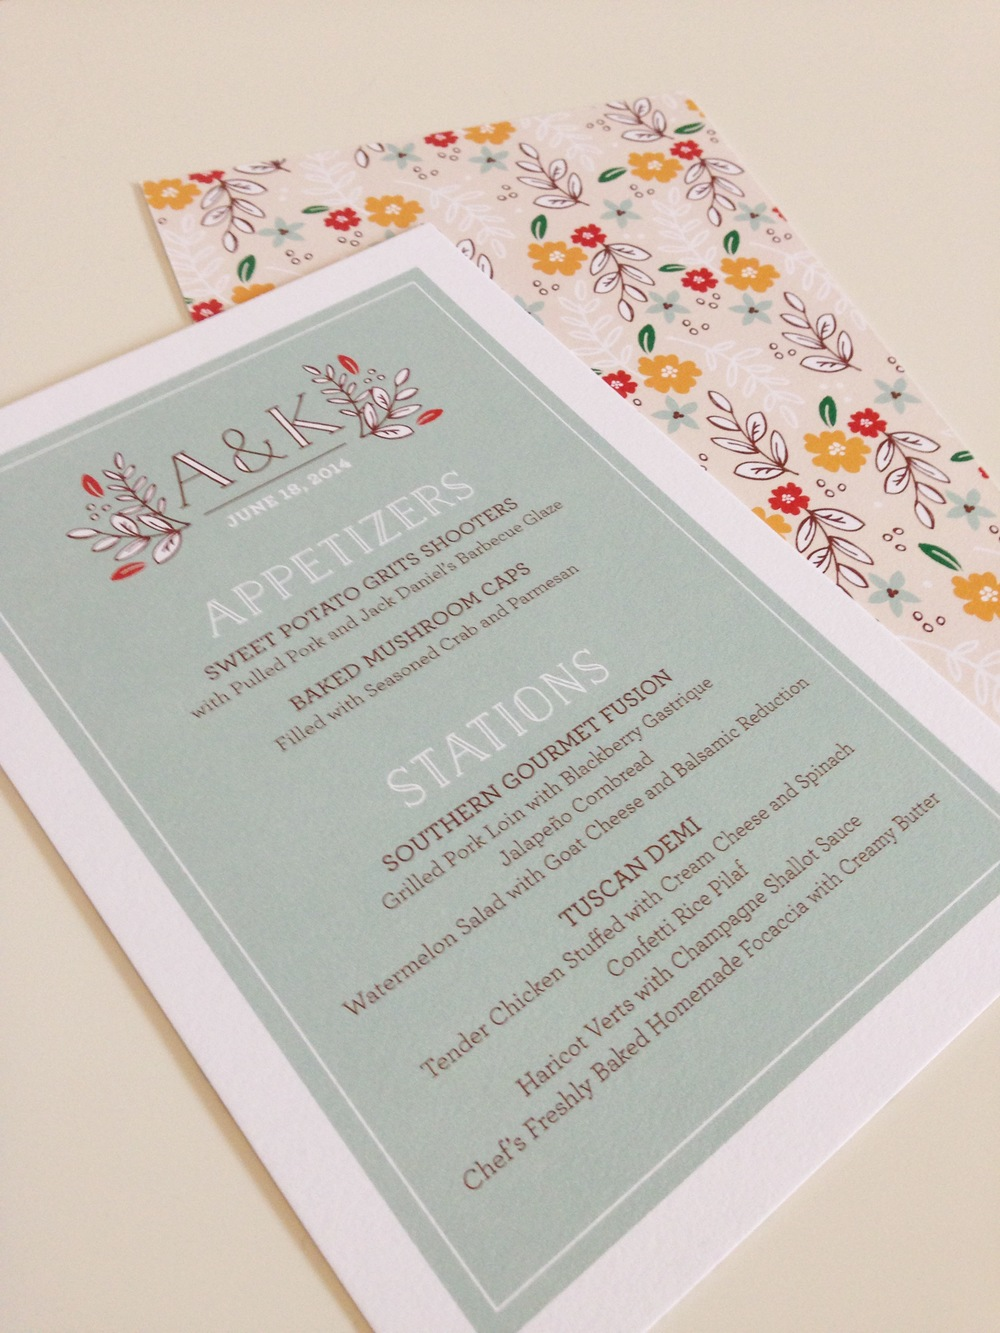 Up close and personal with the menus I created for the event on super-yummy cotton paper. See...the backs are where all the fun is going on!